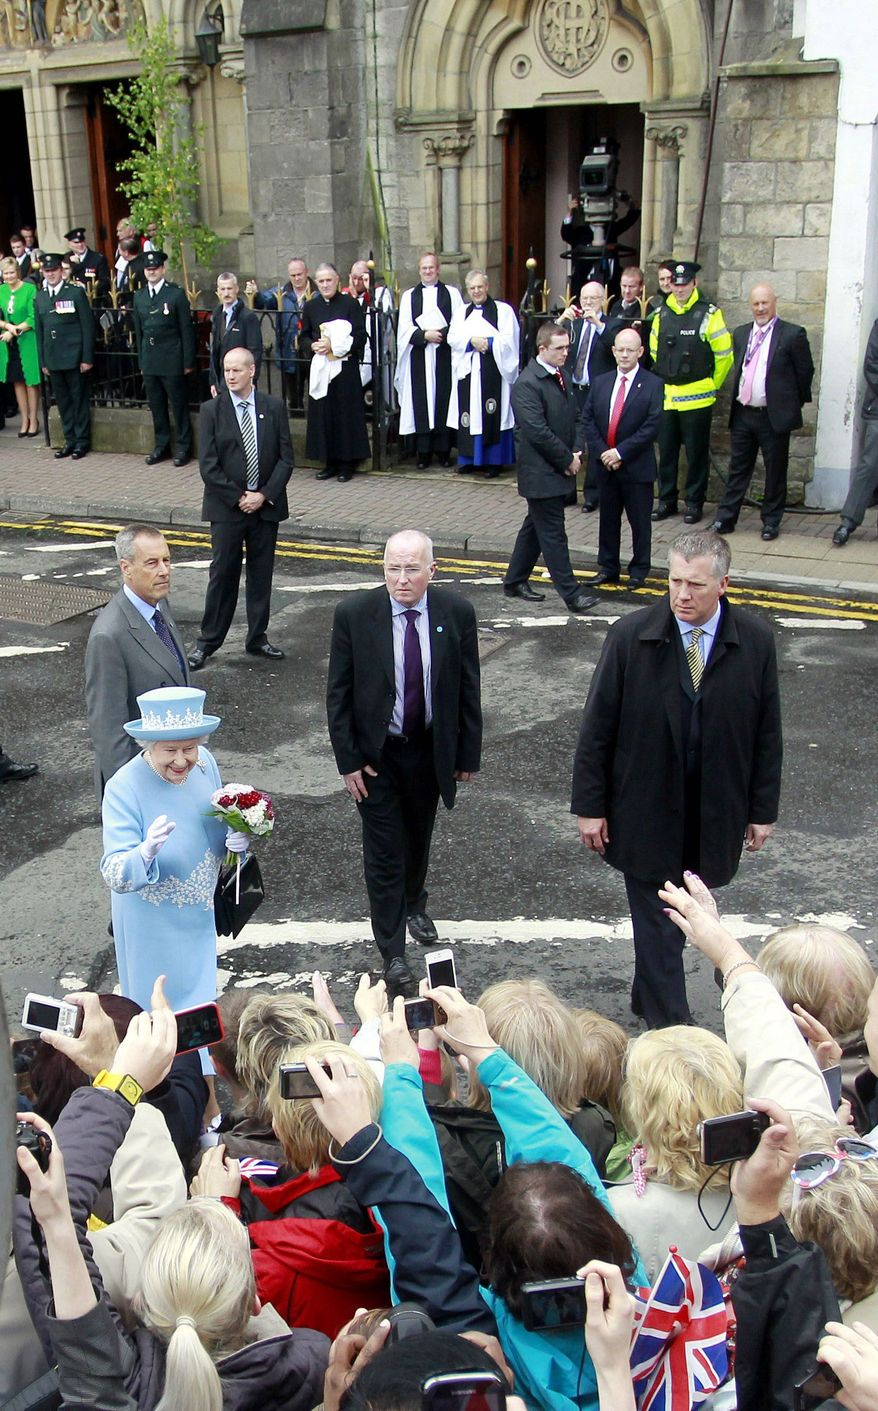 Britain's Queen Elizabeth II greets well-wishers Tuesday as she leaves St. Michael's Roman Catholic Church in Enniskillen, Northern Ireland. Her two-day visit marking her Diamond Jubilee is scheduled to include a meeting with former IRA leader Martin McGuinness for what many view as the symbolic conclusion to a decades-long conflict with the crown. (Associated Press)